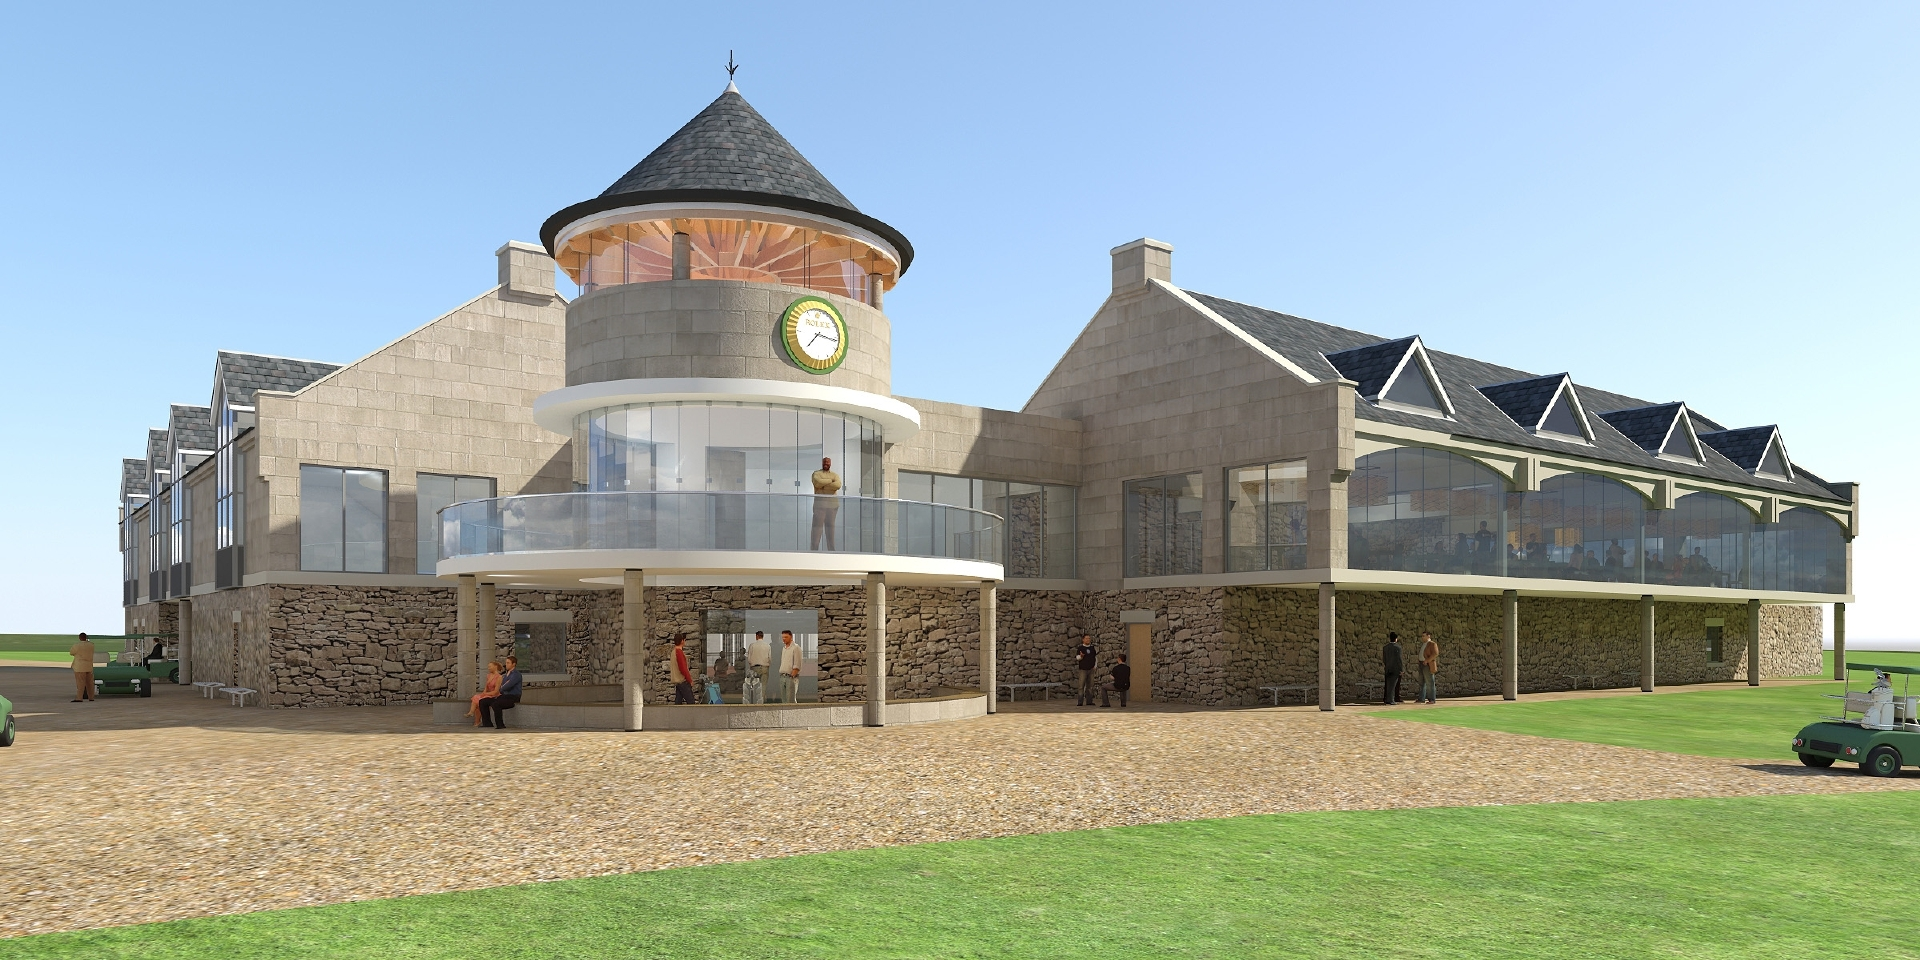 The plan to extend facilities at the Carnoustie golf centre has proved highly controversial.